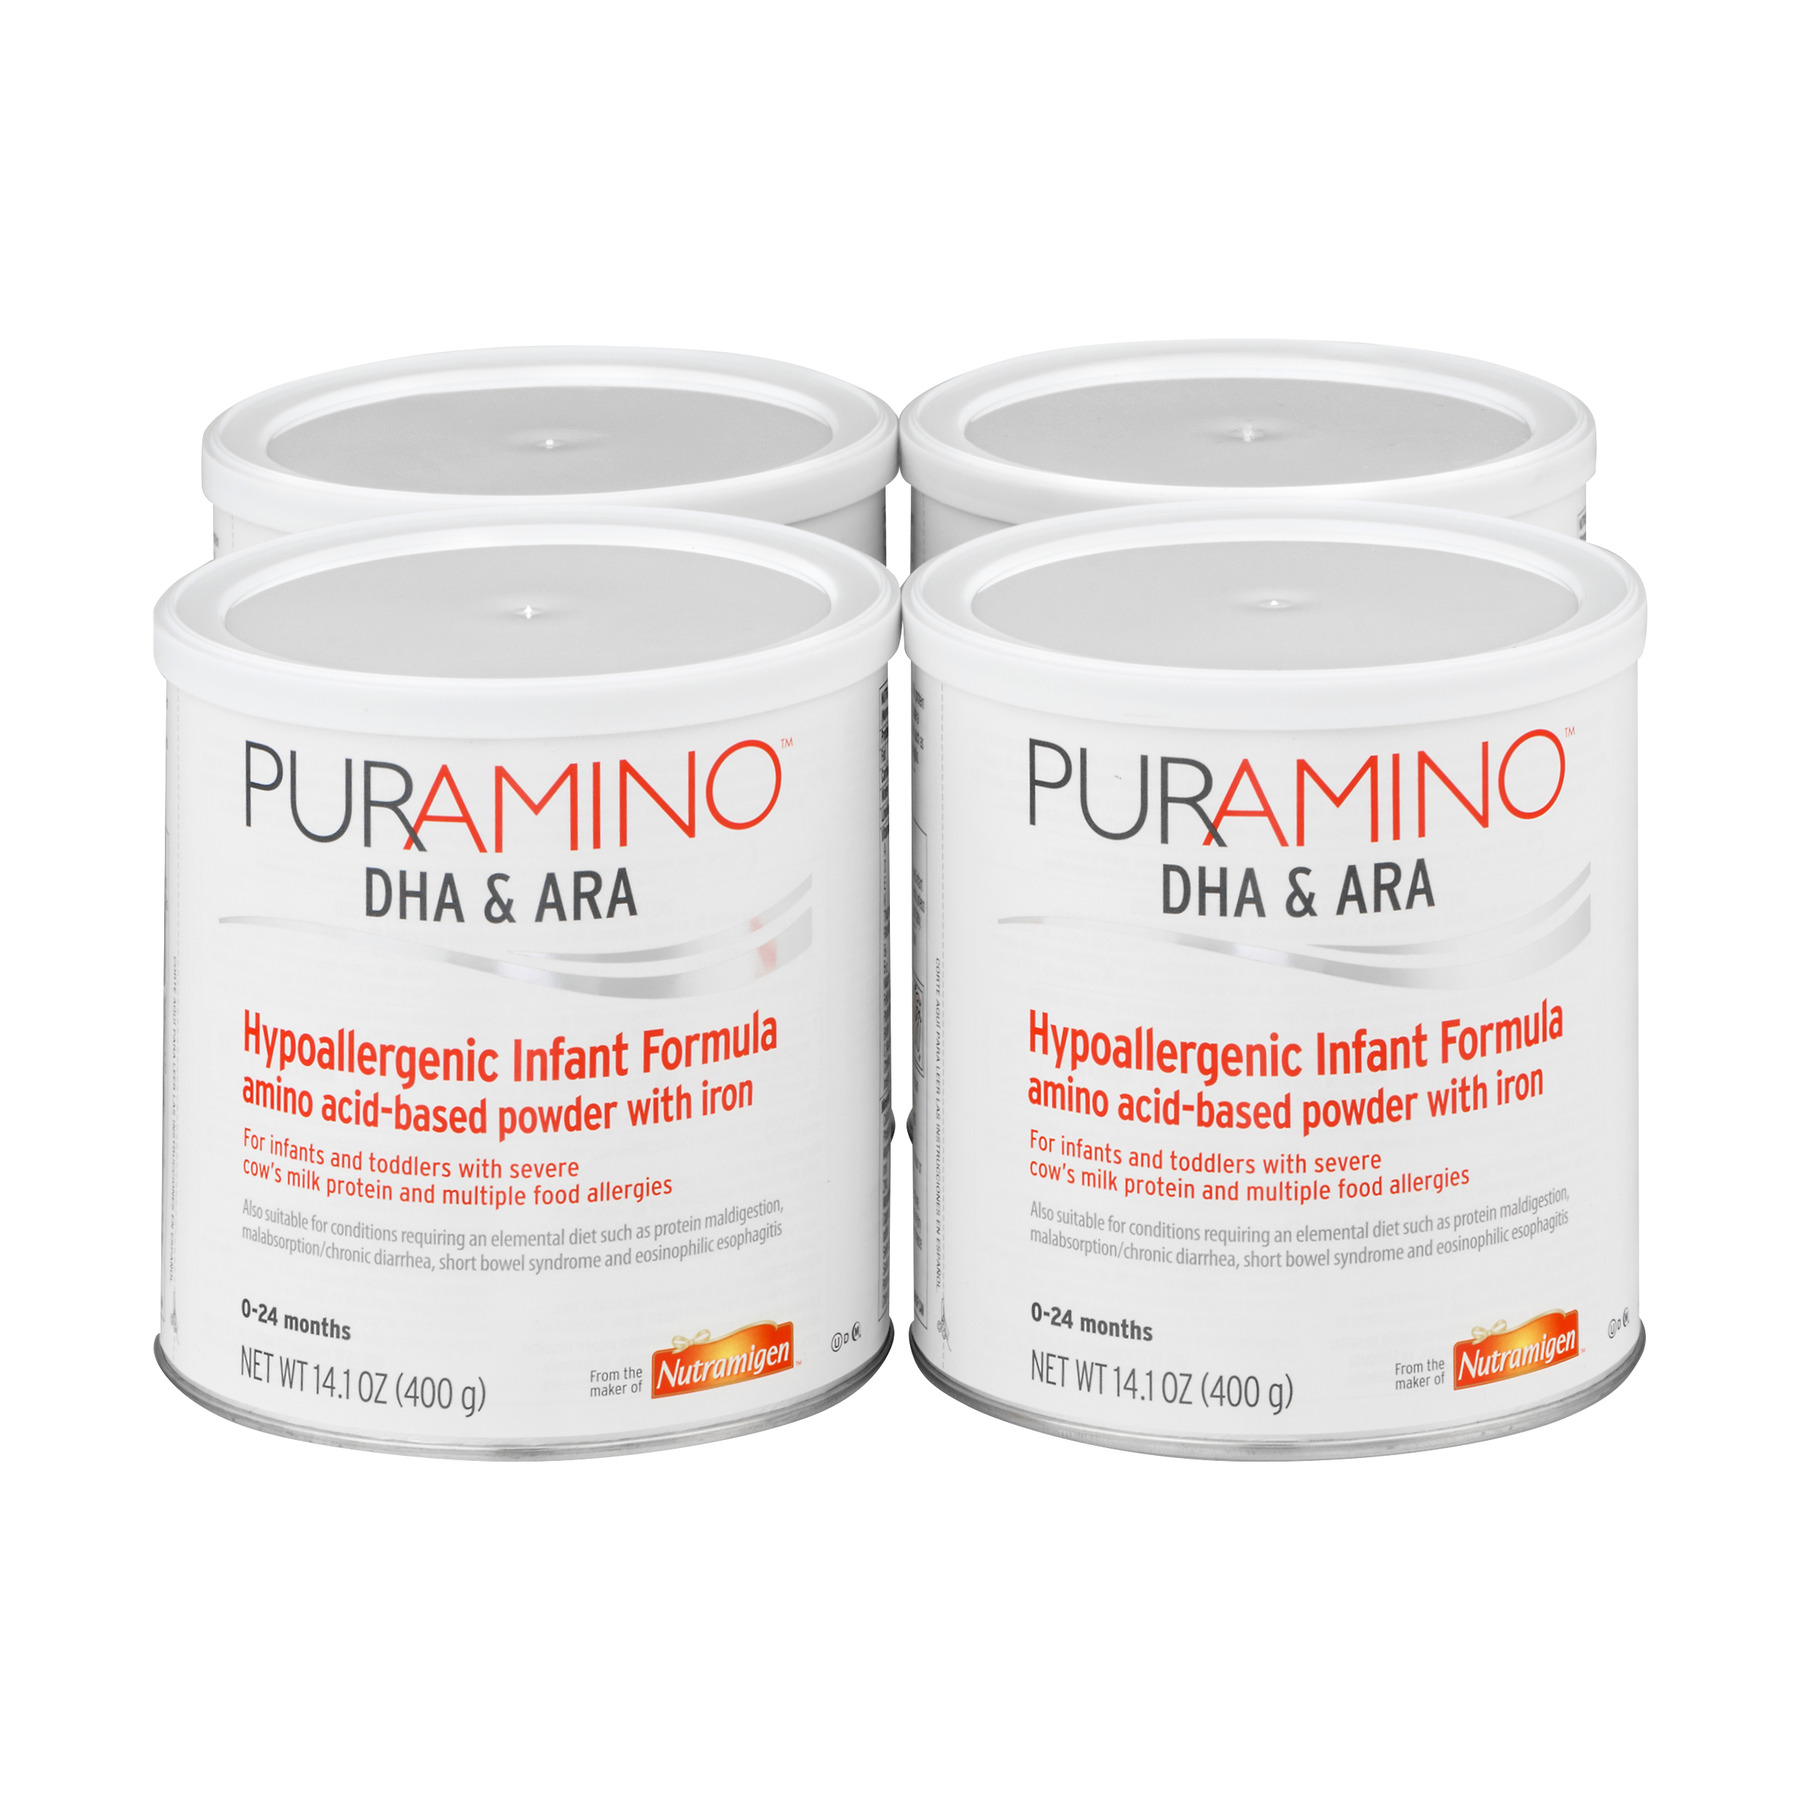 PurAmino DHA and ARA Hypoallergenic Infant Formula, Powder, 14.1 oz Cans, Case of 4